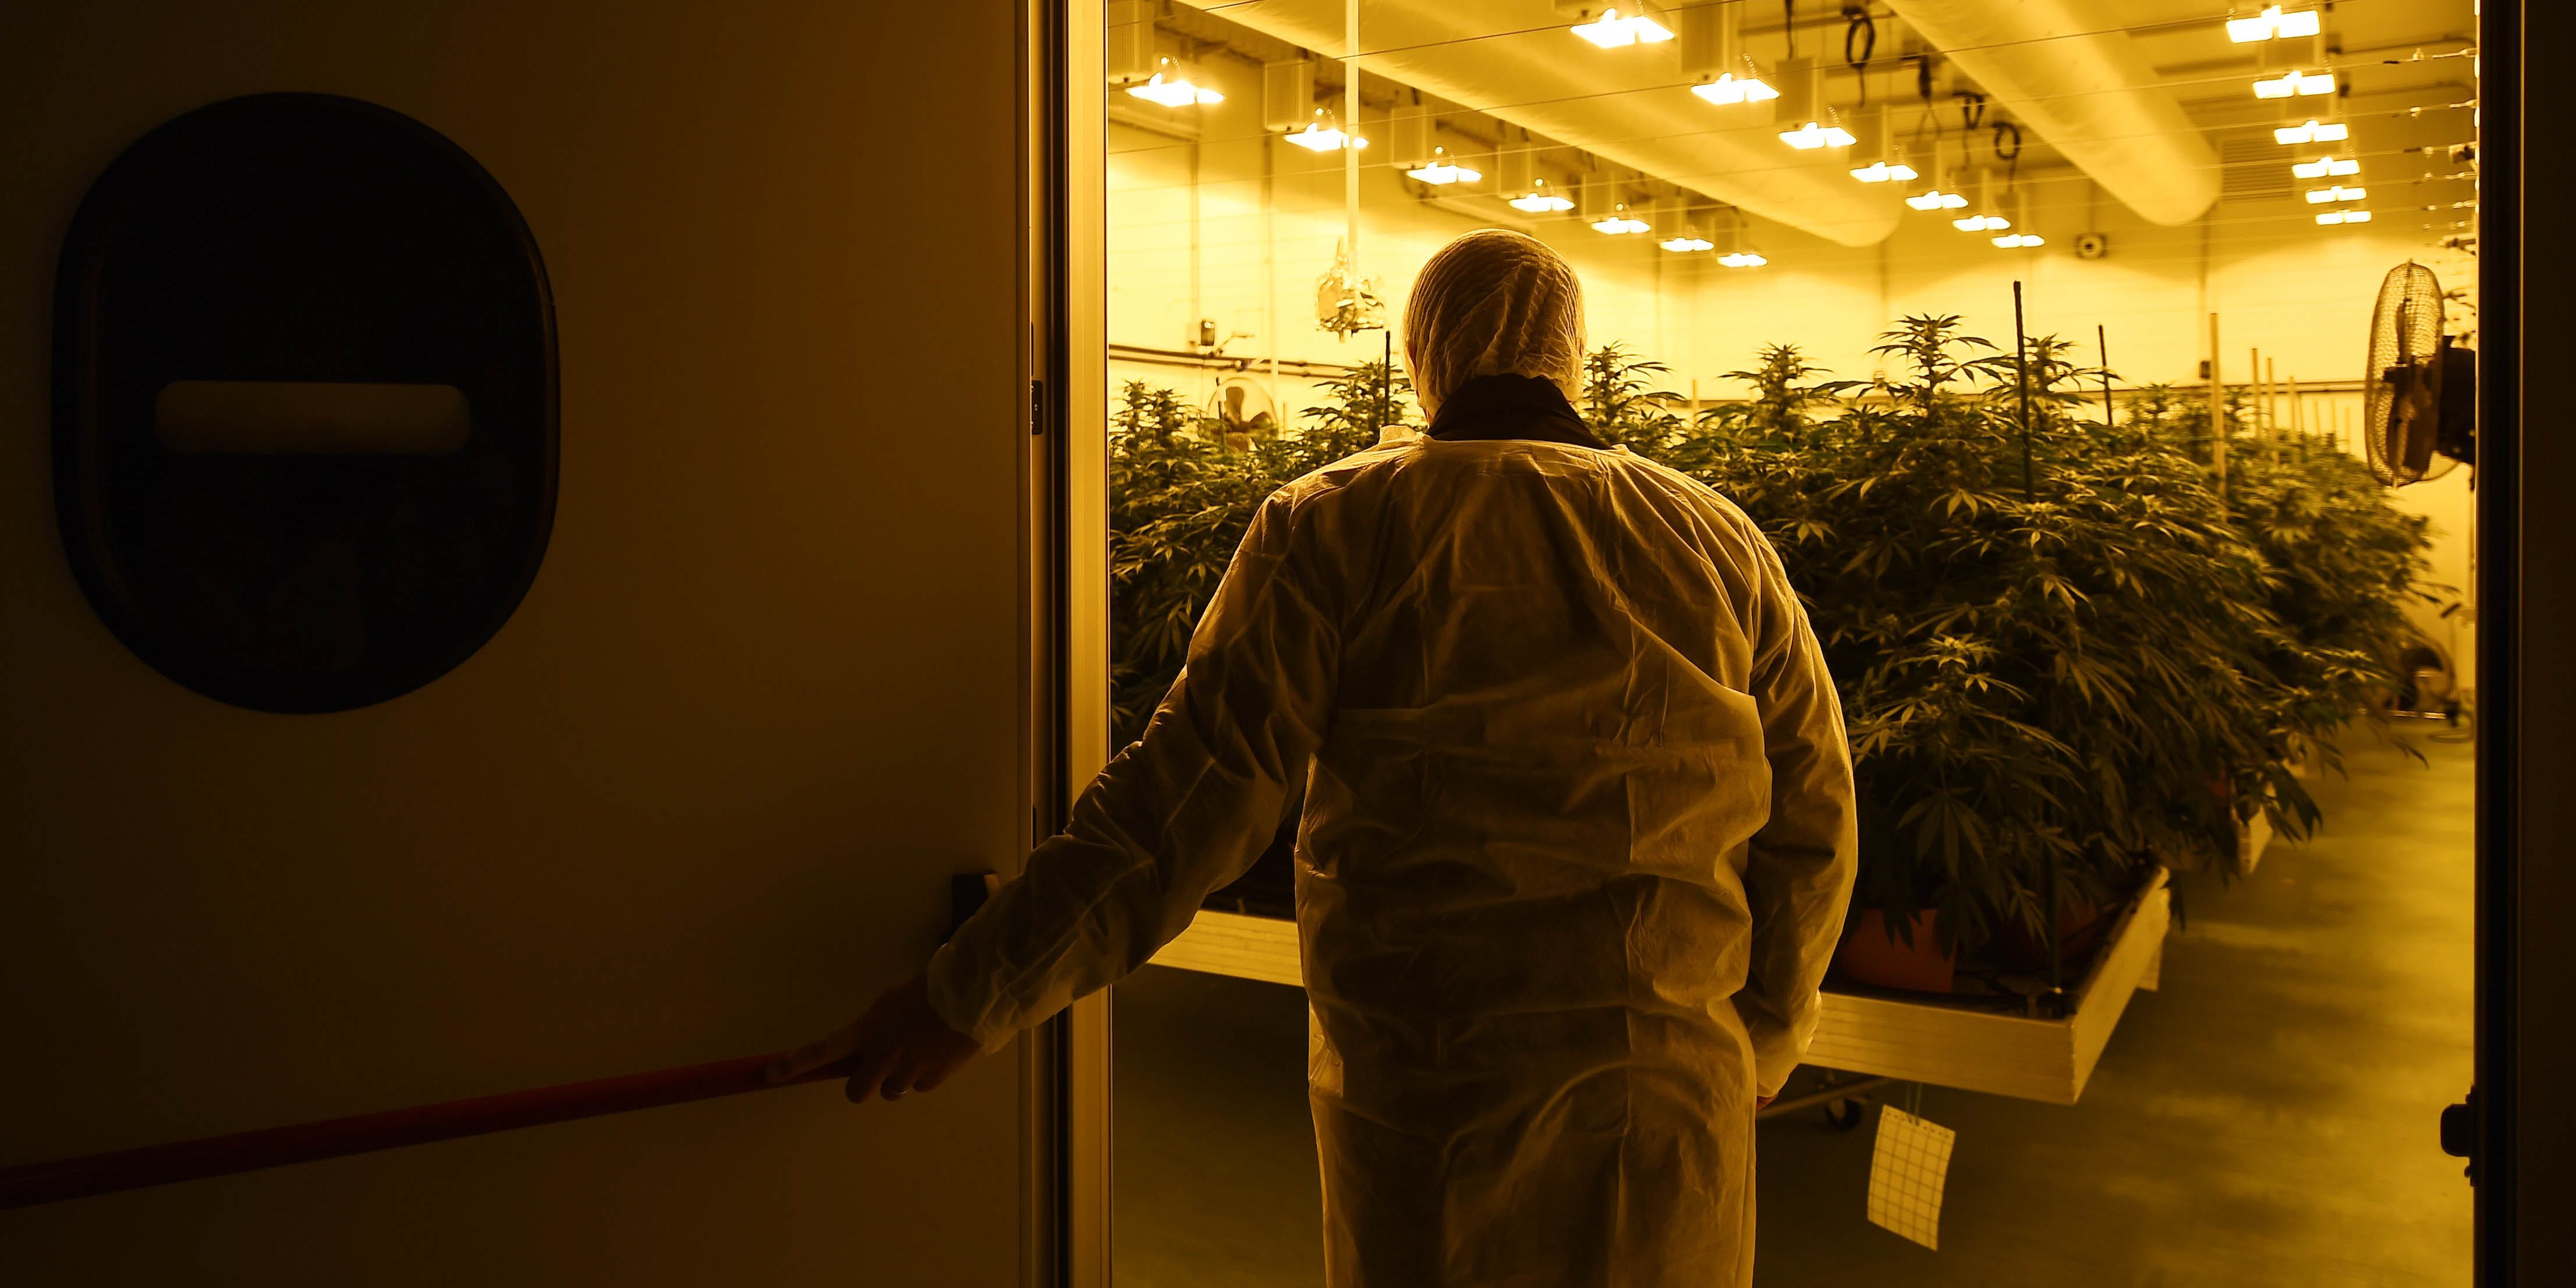 Modern Day Weed vs. Hippie Weed: Is Weed Getting Stronger? Here, a man is shown entering a grow room